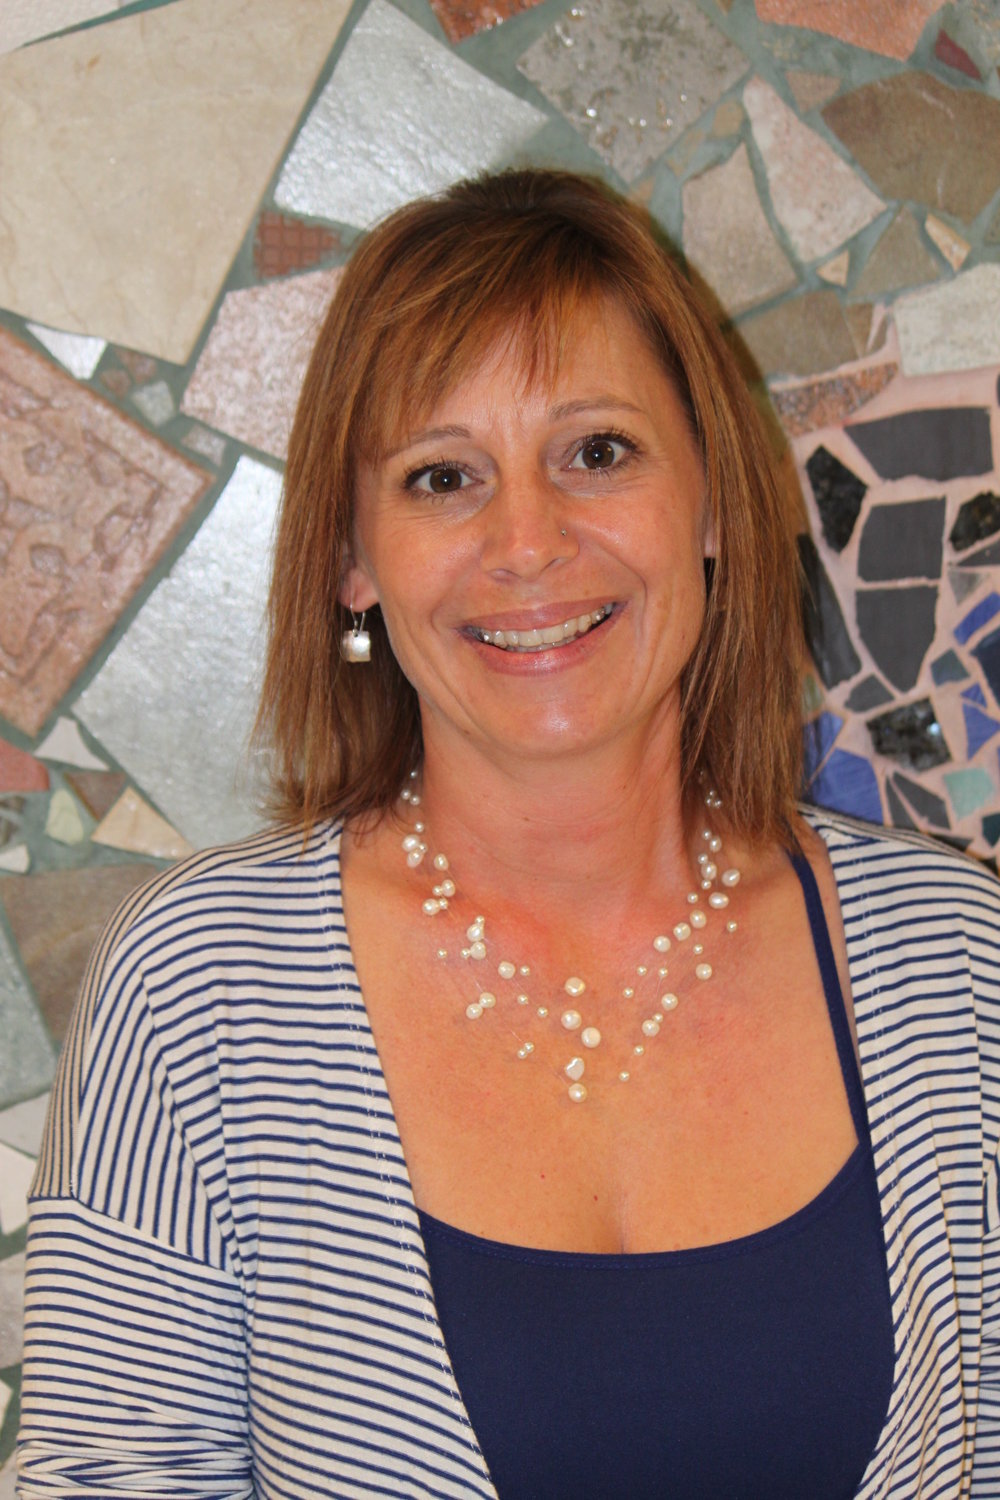 Karen Cleland, CYC RPC - I am a Master Practitioner in Clinical Counselling. (Registered Professional Counsellor with the Canadian Professional Counsellors Assn #3564)I have 20+ years experience in the field of counselling and therapy. I am a parent to two teens and have resided in Vernon for 15 years.I am a senior practitioner in Mind Body Attunement Therapy and I am clinically supervised by Dr. Kevin Miller.250-309-7082karenclelandtherapy@gmail.com